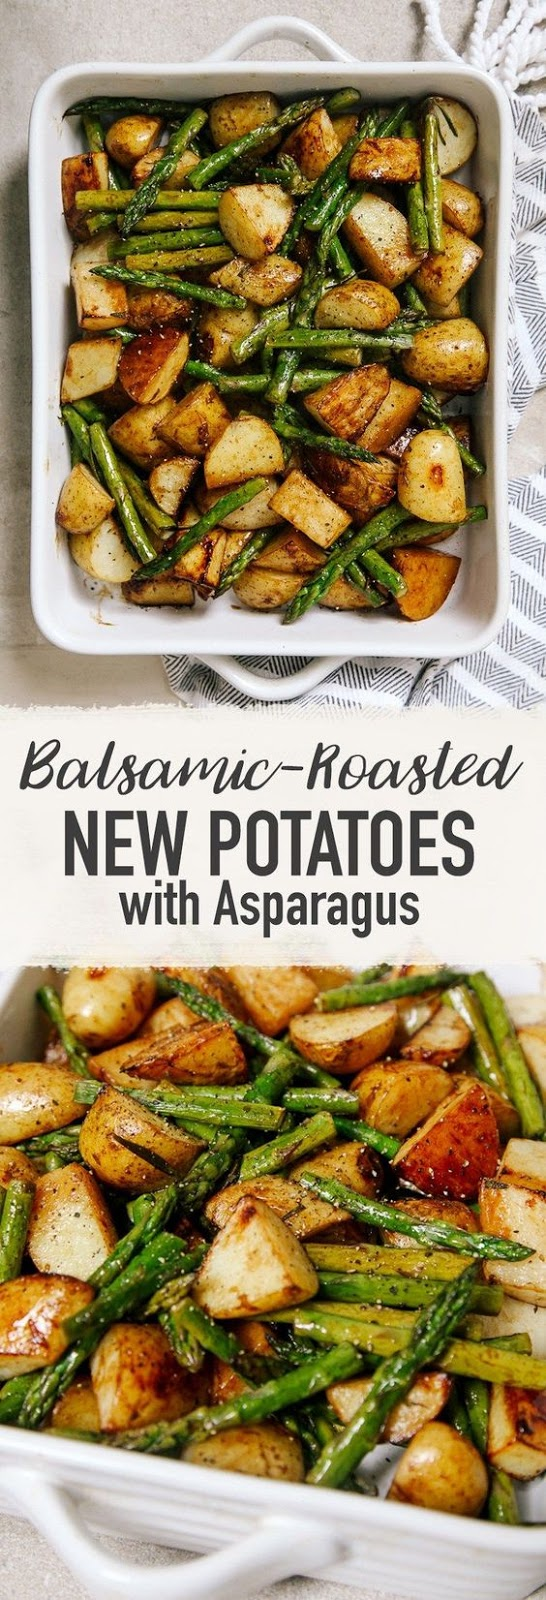 I've been obsessed with balsamic vinegar lately, adding it to all my meals and binge-eating bread and and balsamic vinegar dip. It's pretty addictive stuff and adds such a wonderful, unique flavour to things.  Today's recipe uses it to bring out the sweetness of seasonal asparagus and give a crisp golden coating to these new potatoes.